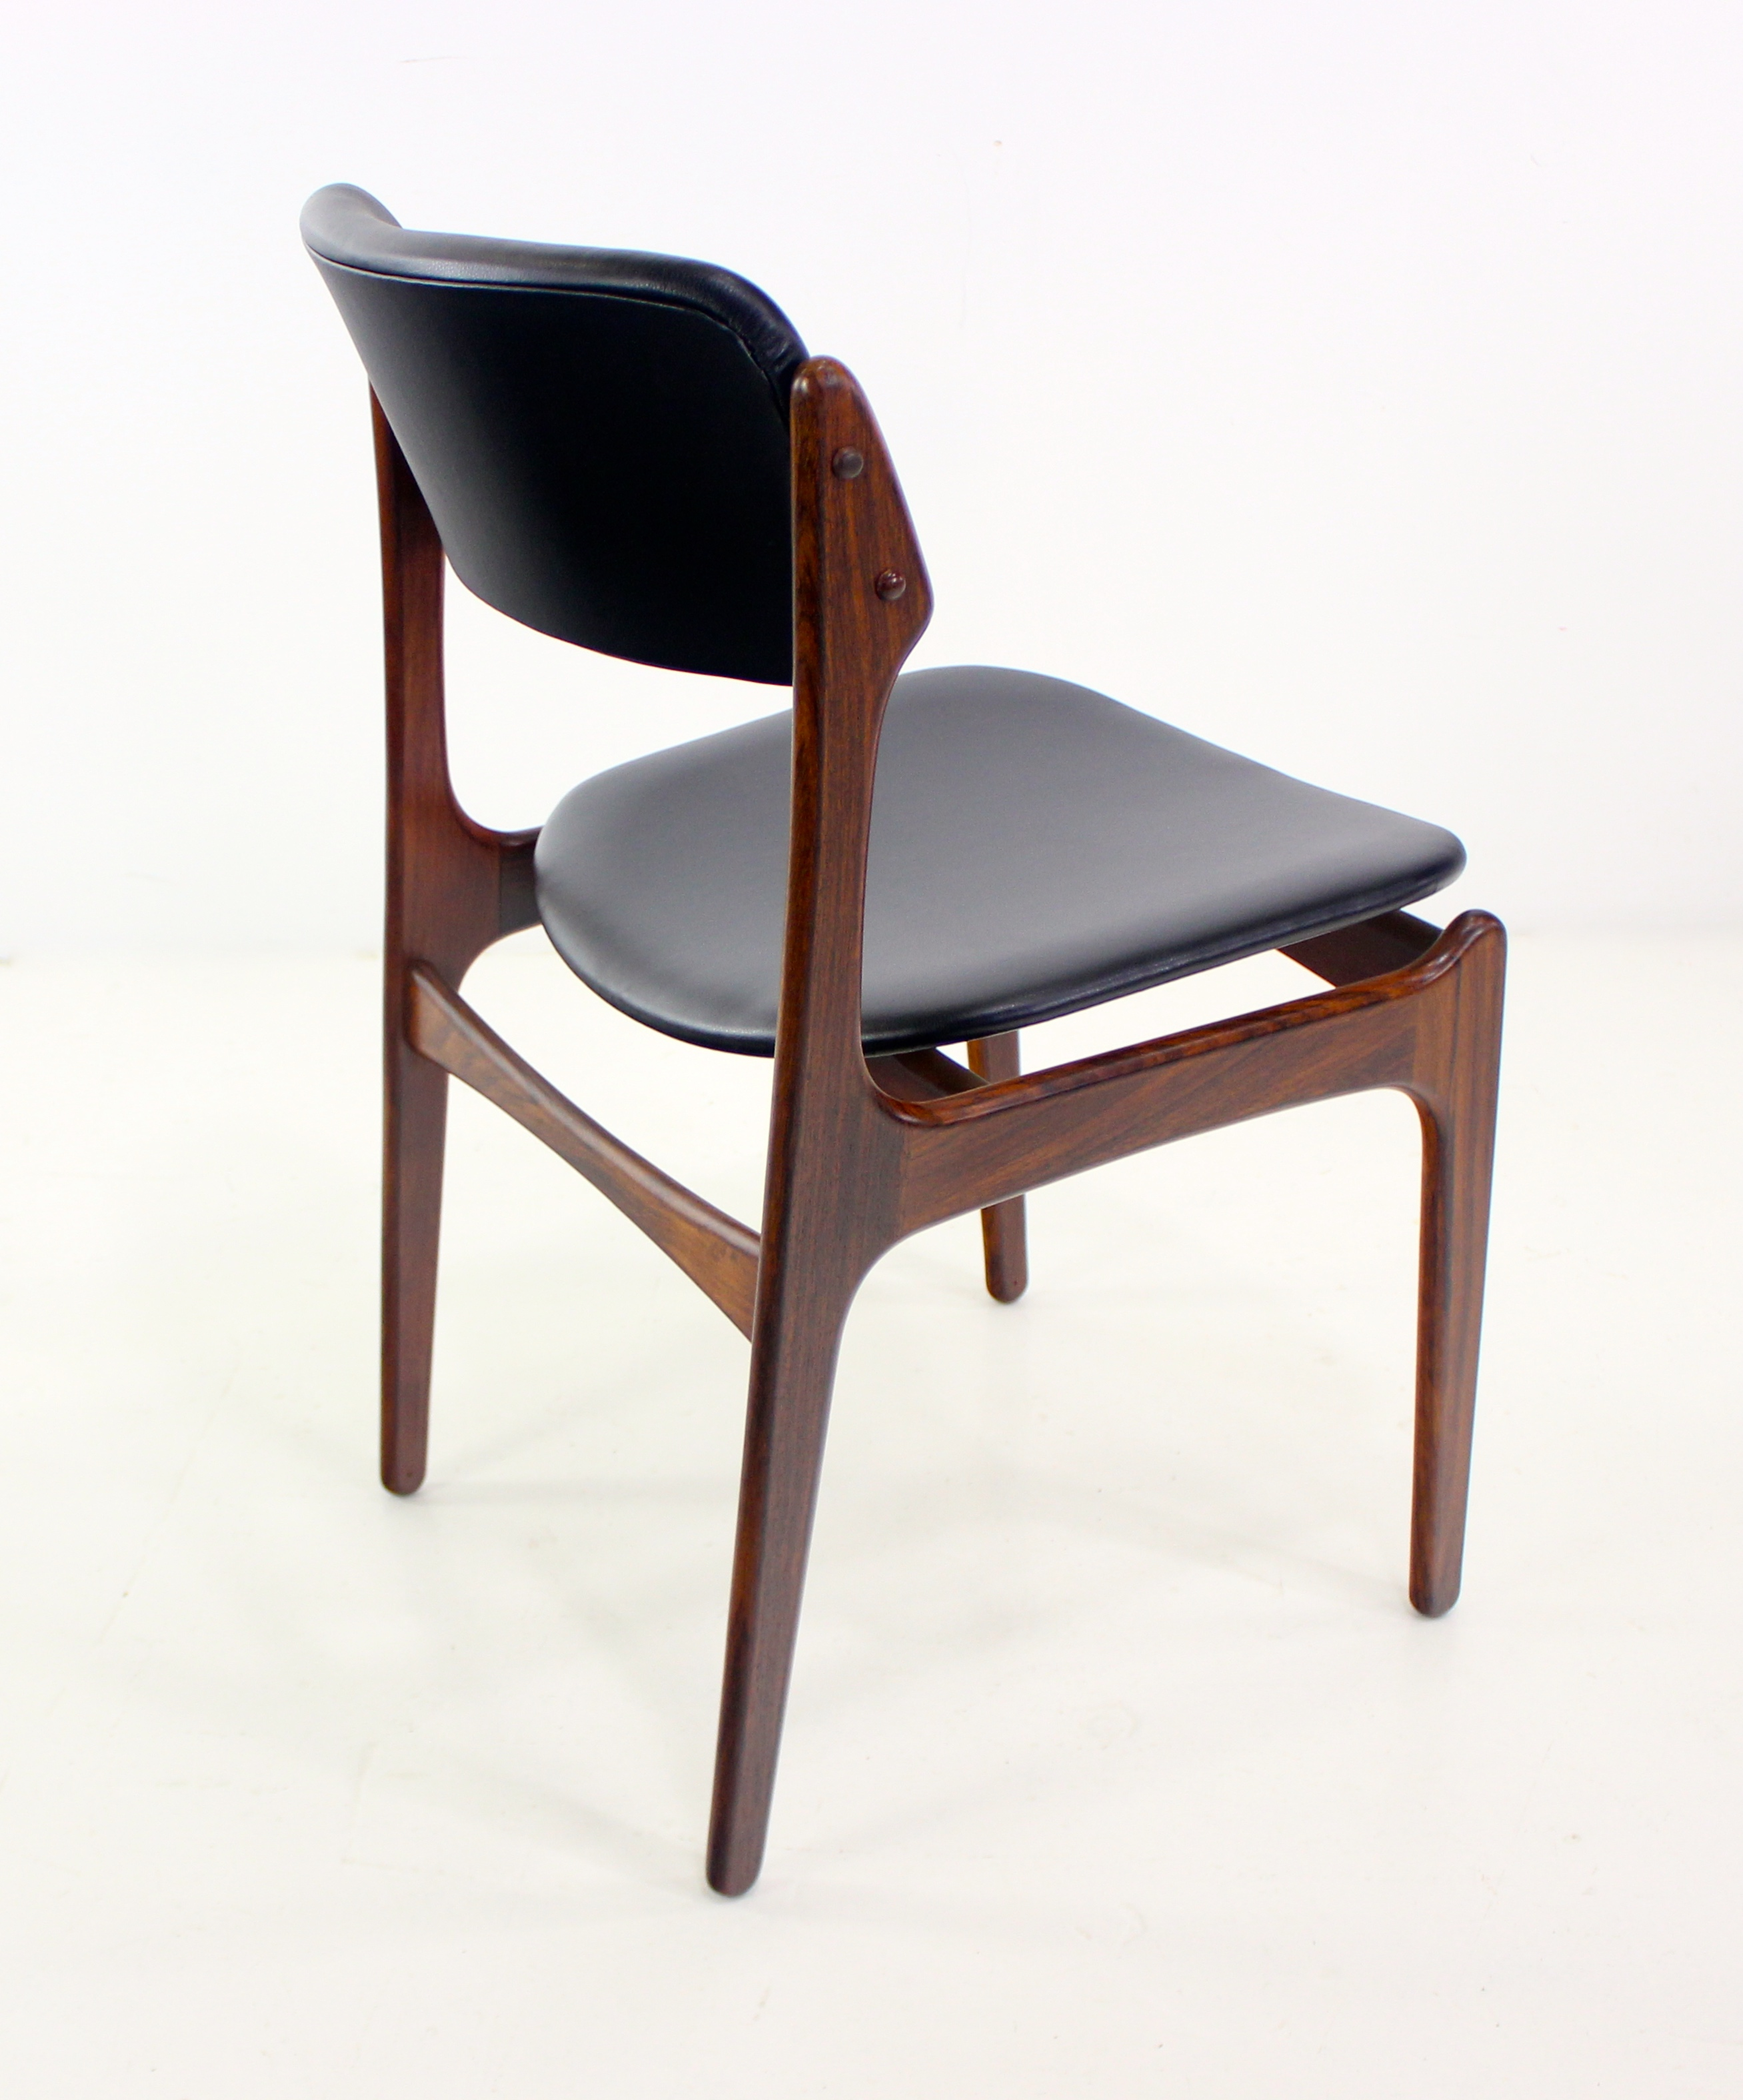 erik buck chairs rolling commode chair eight danish modern rosewood dining designed by